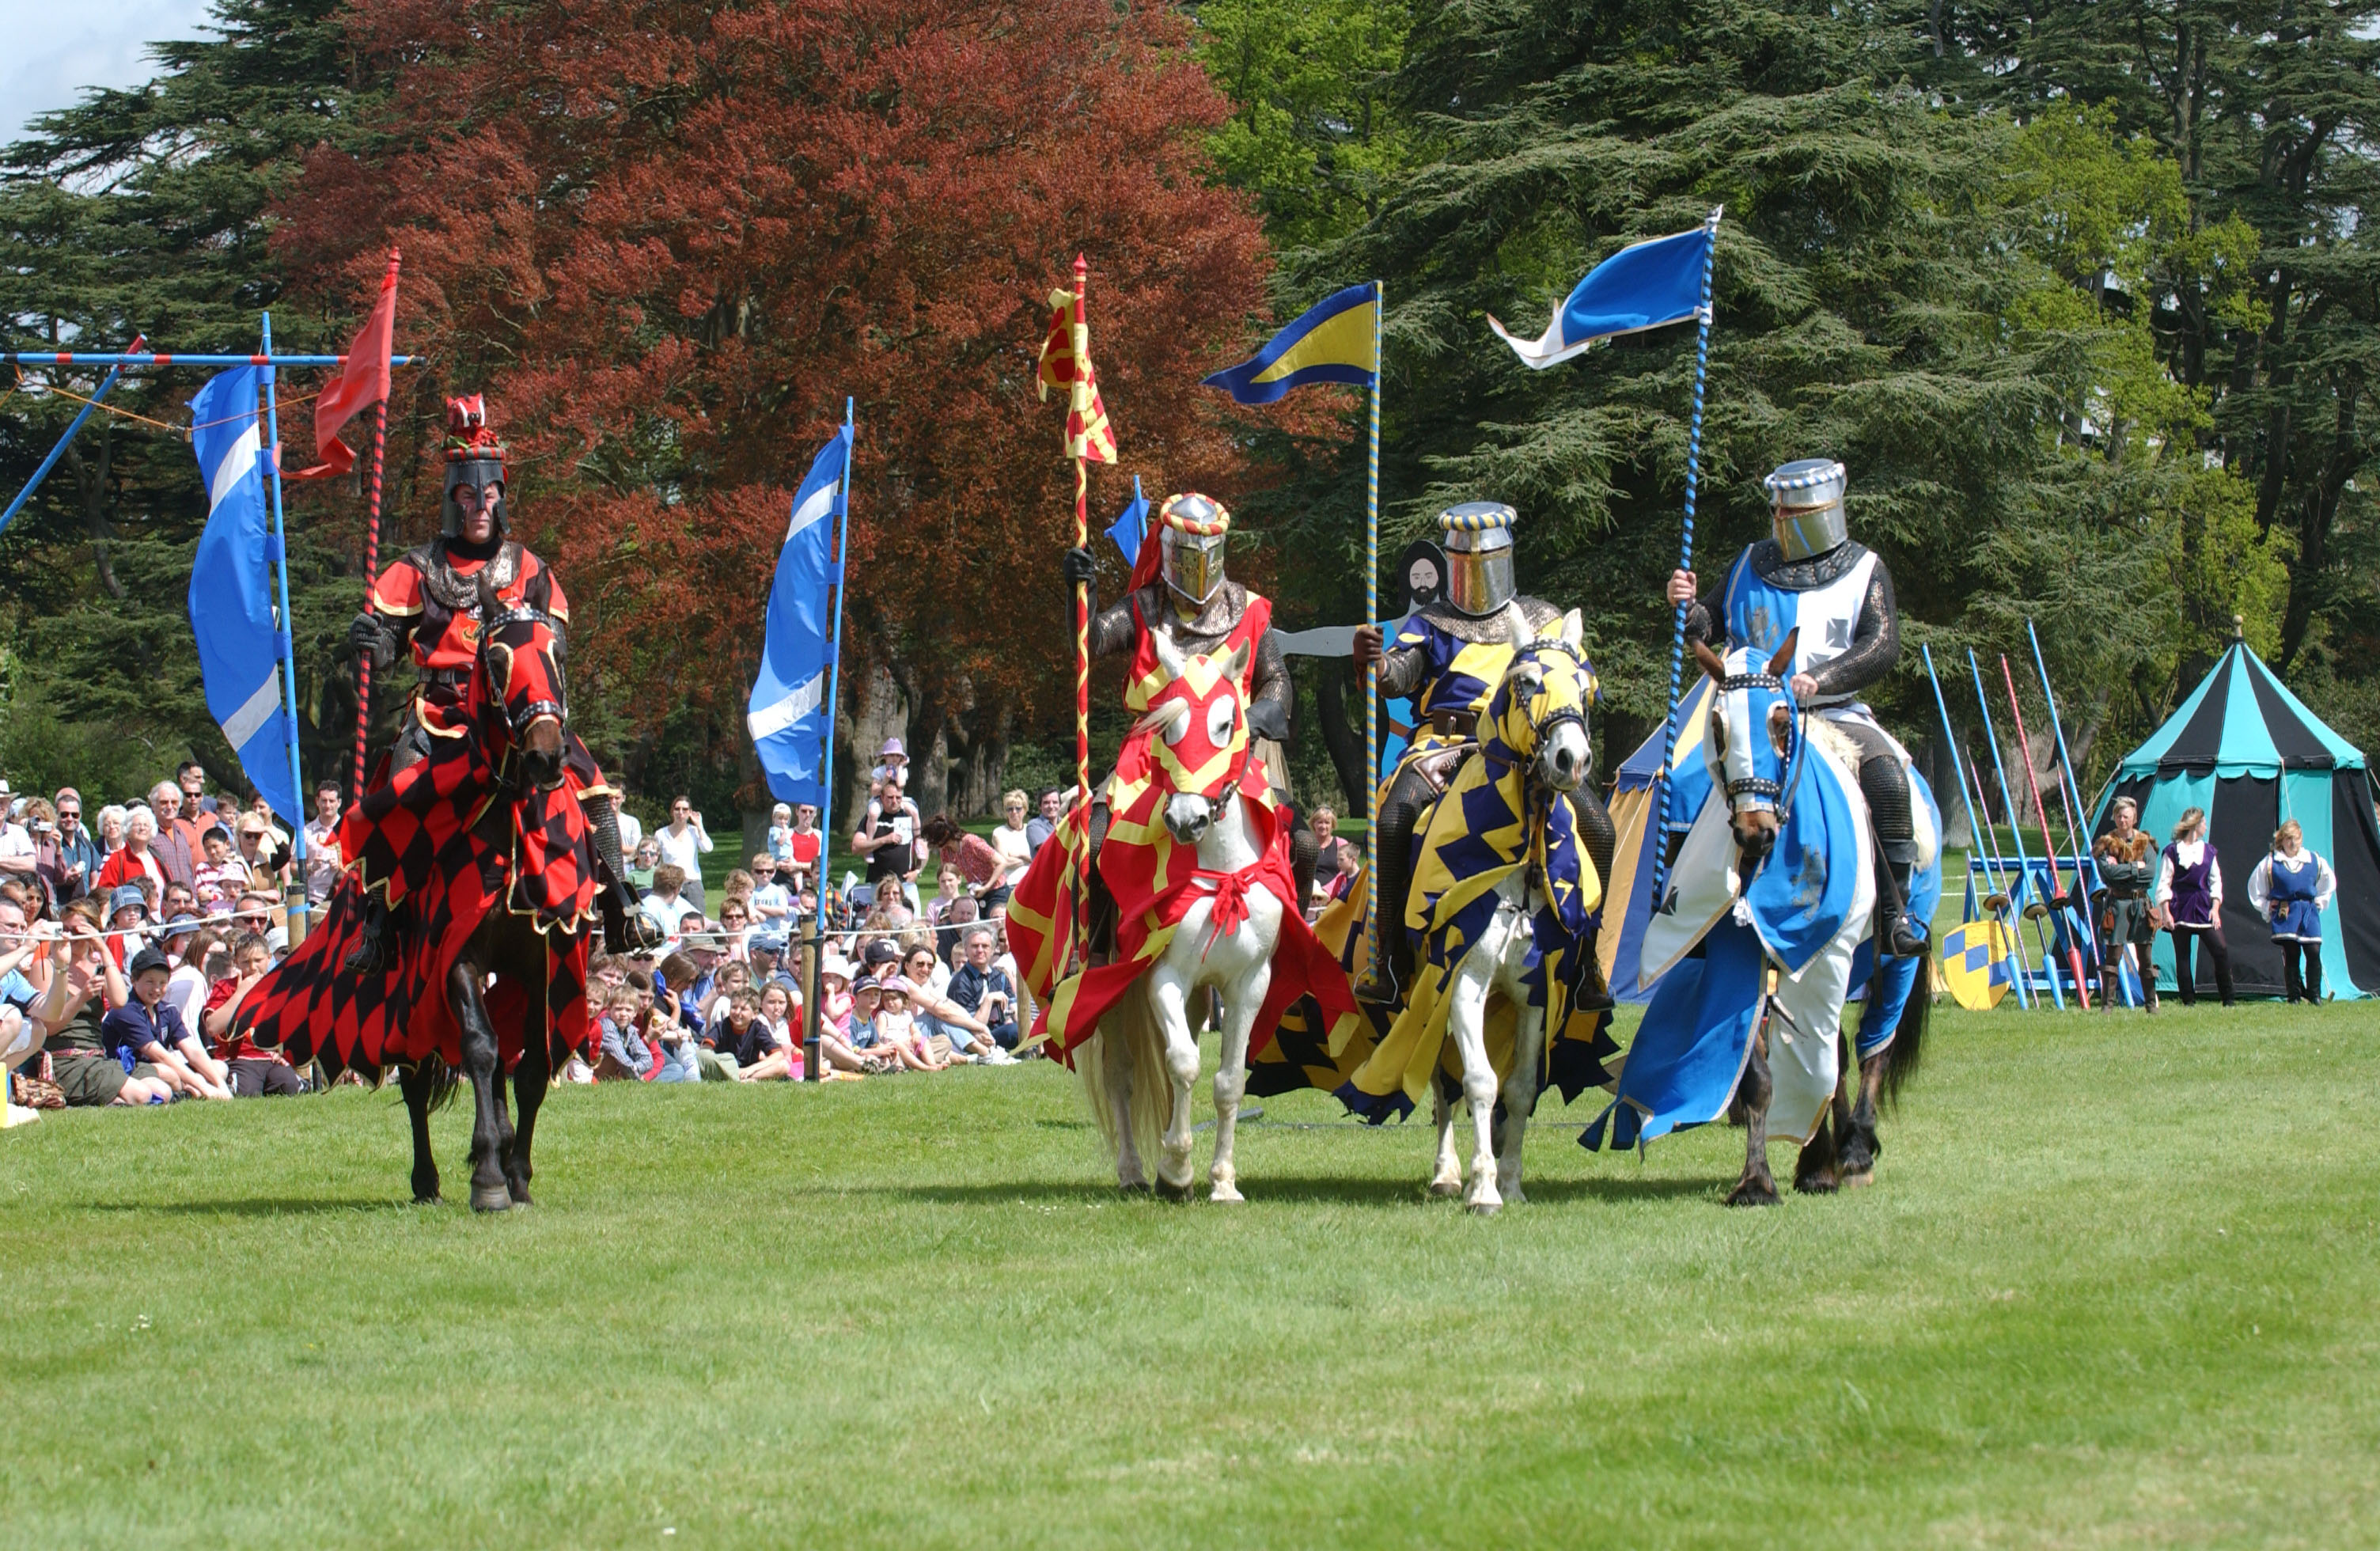 jousting2-012-f634a40